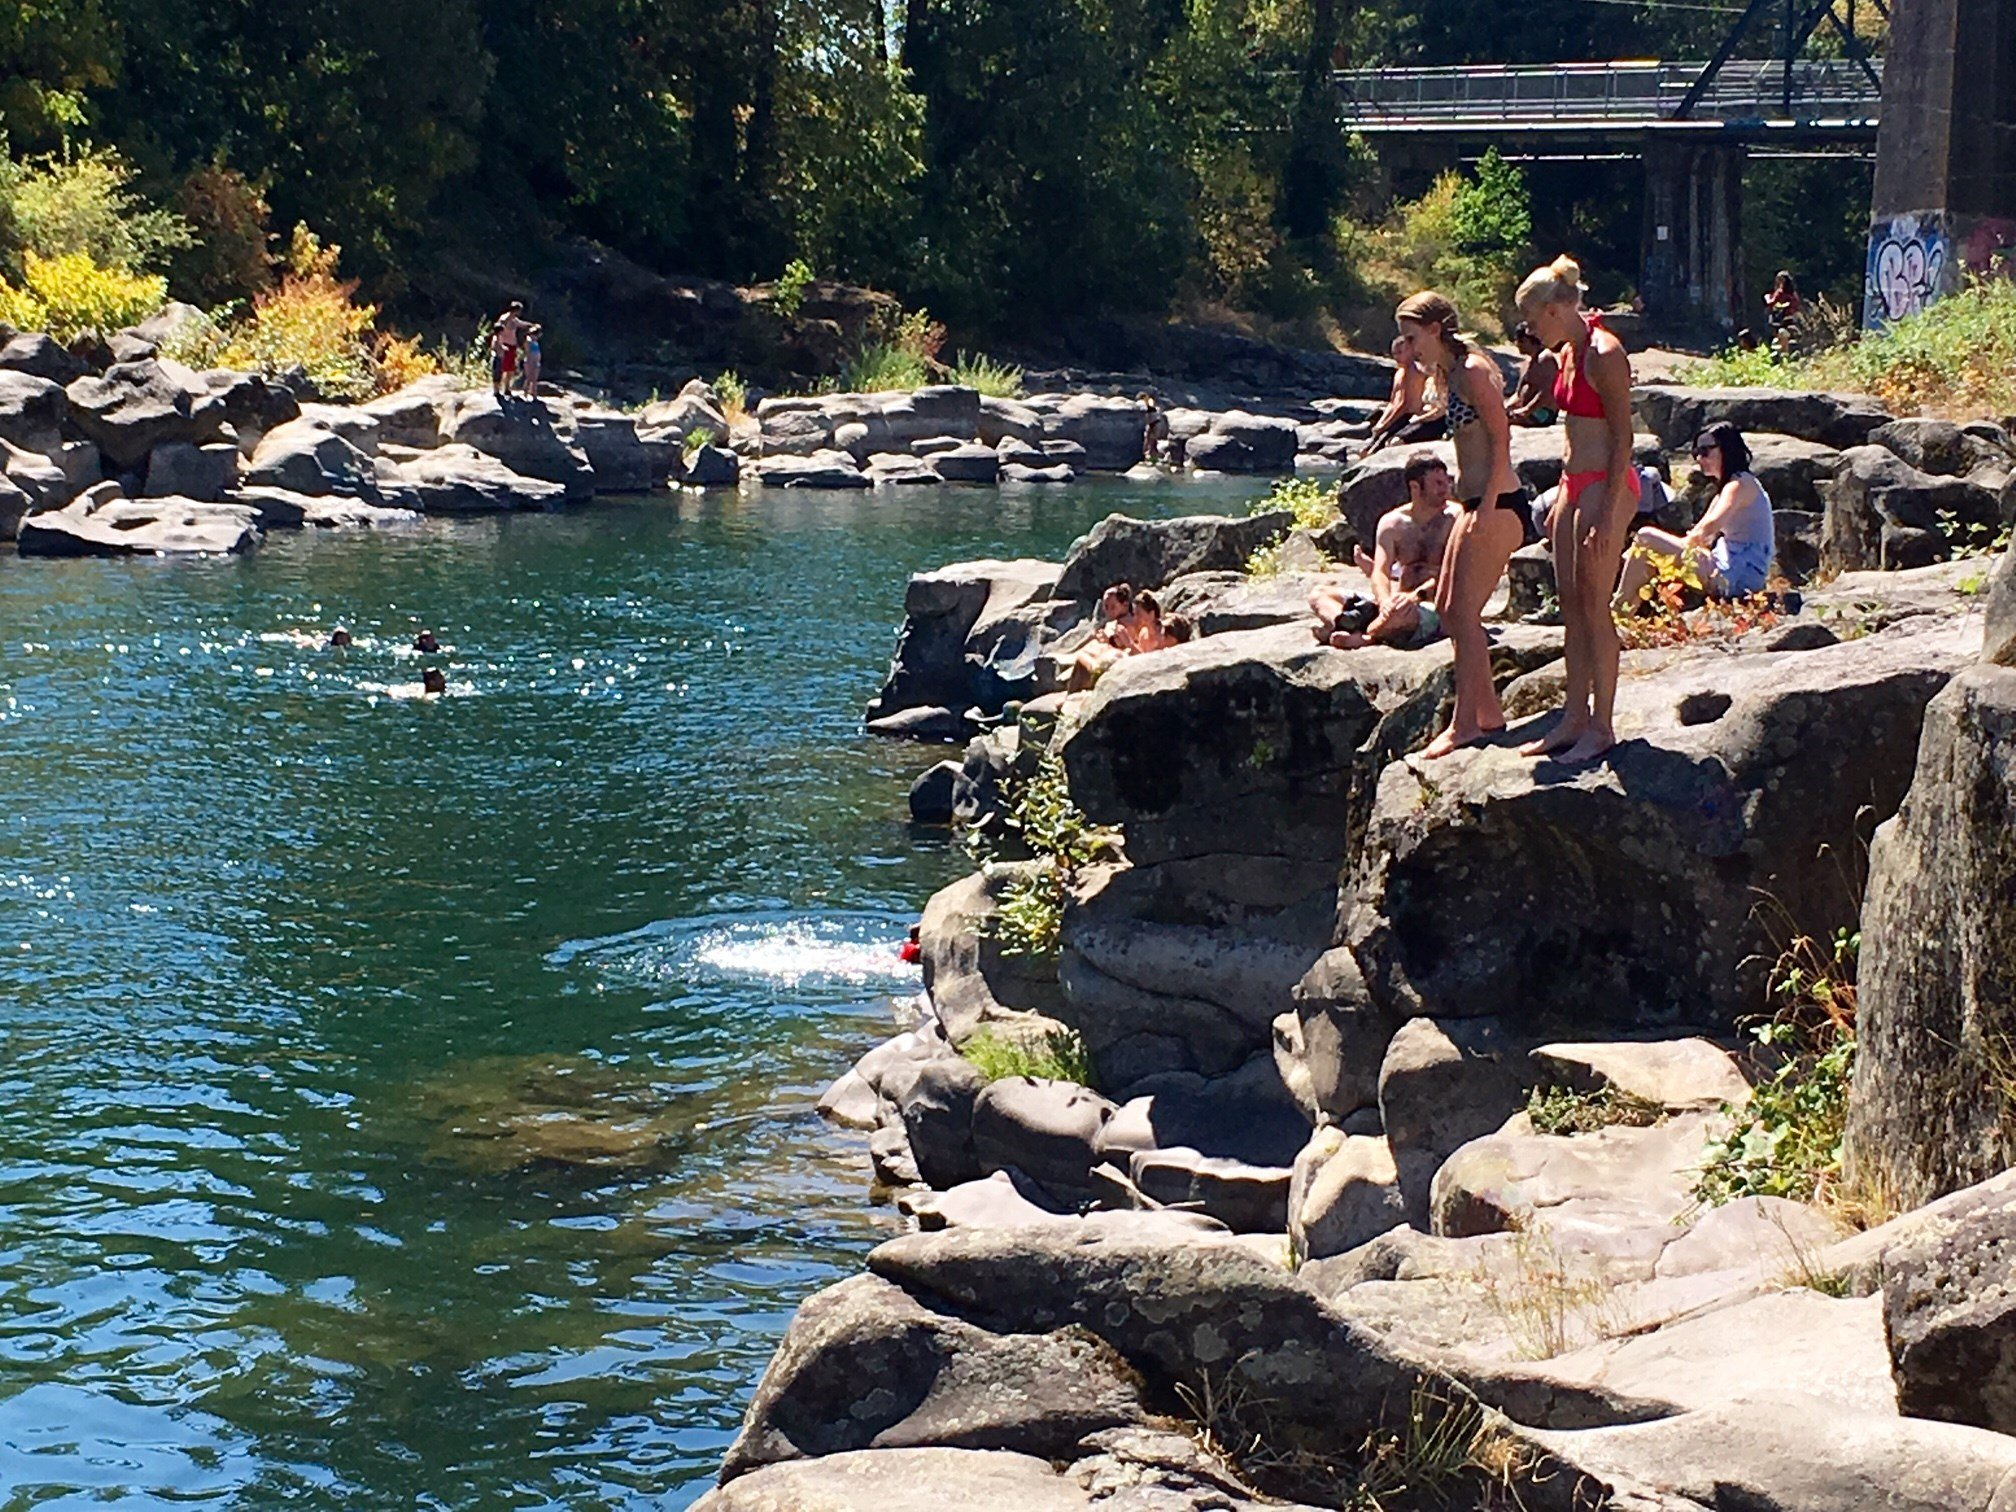 People at High Rocks in Gladstone Thursday. (KPTV)